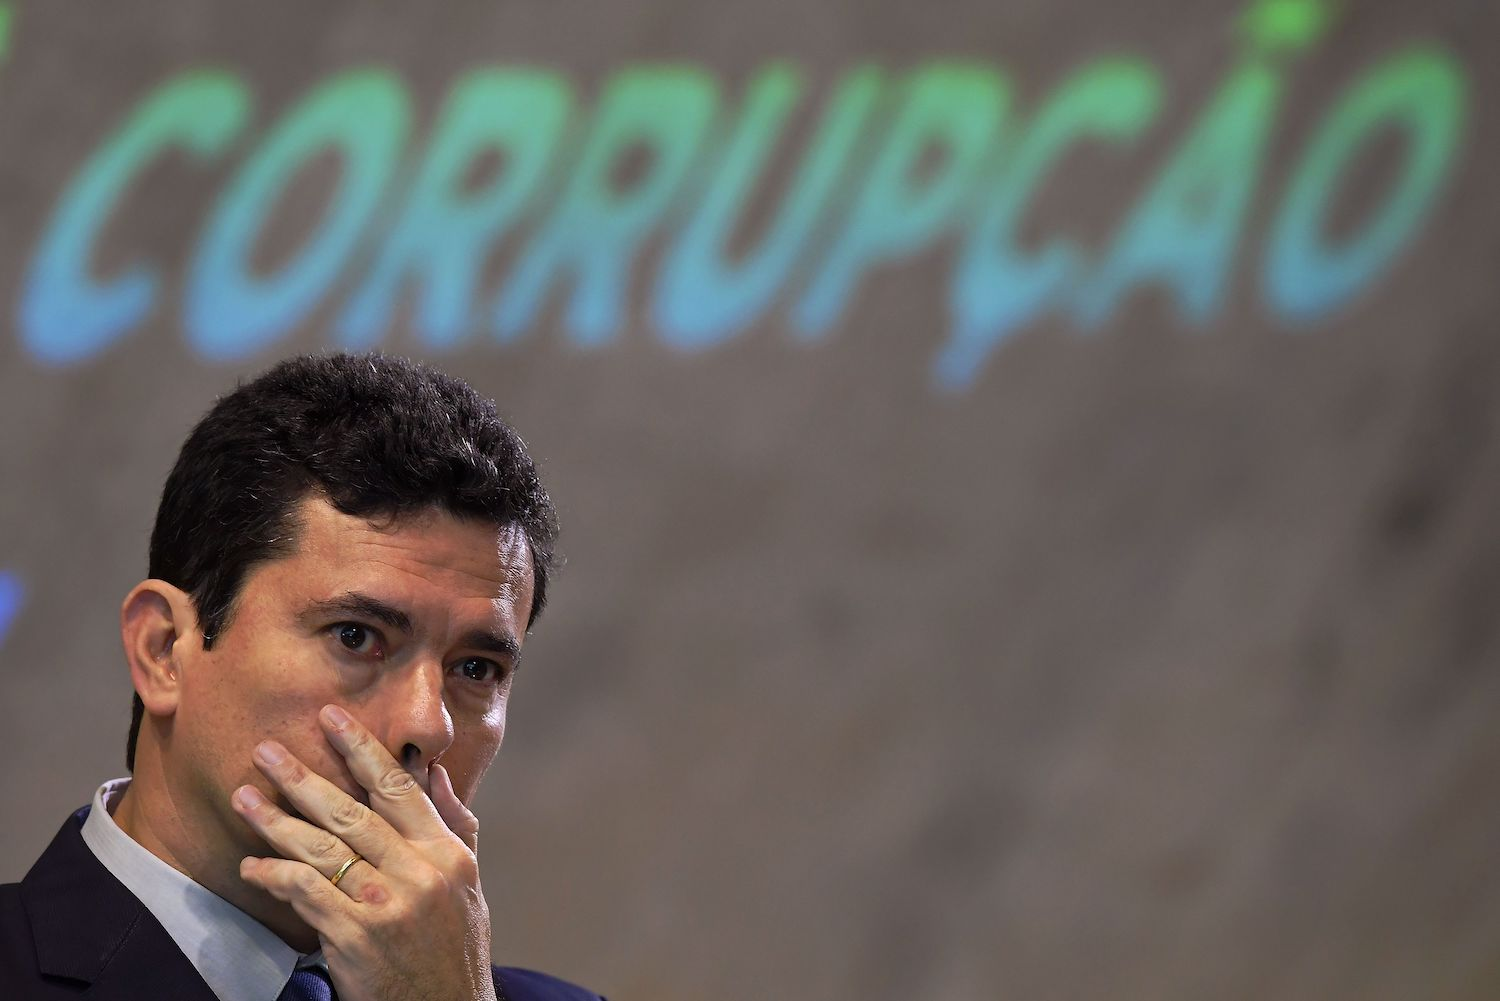 Sergio Moro gestures during a national forum on combating corruption in Rio de Janeiro, Brazil, on Nov. 23, 2018.